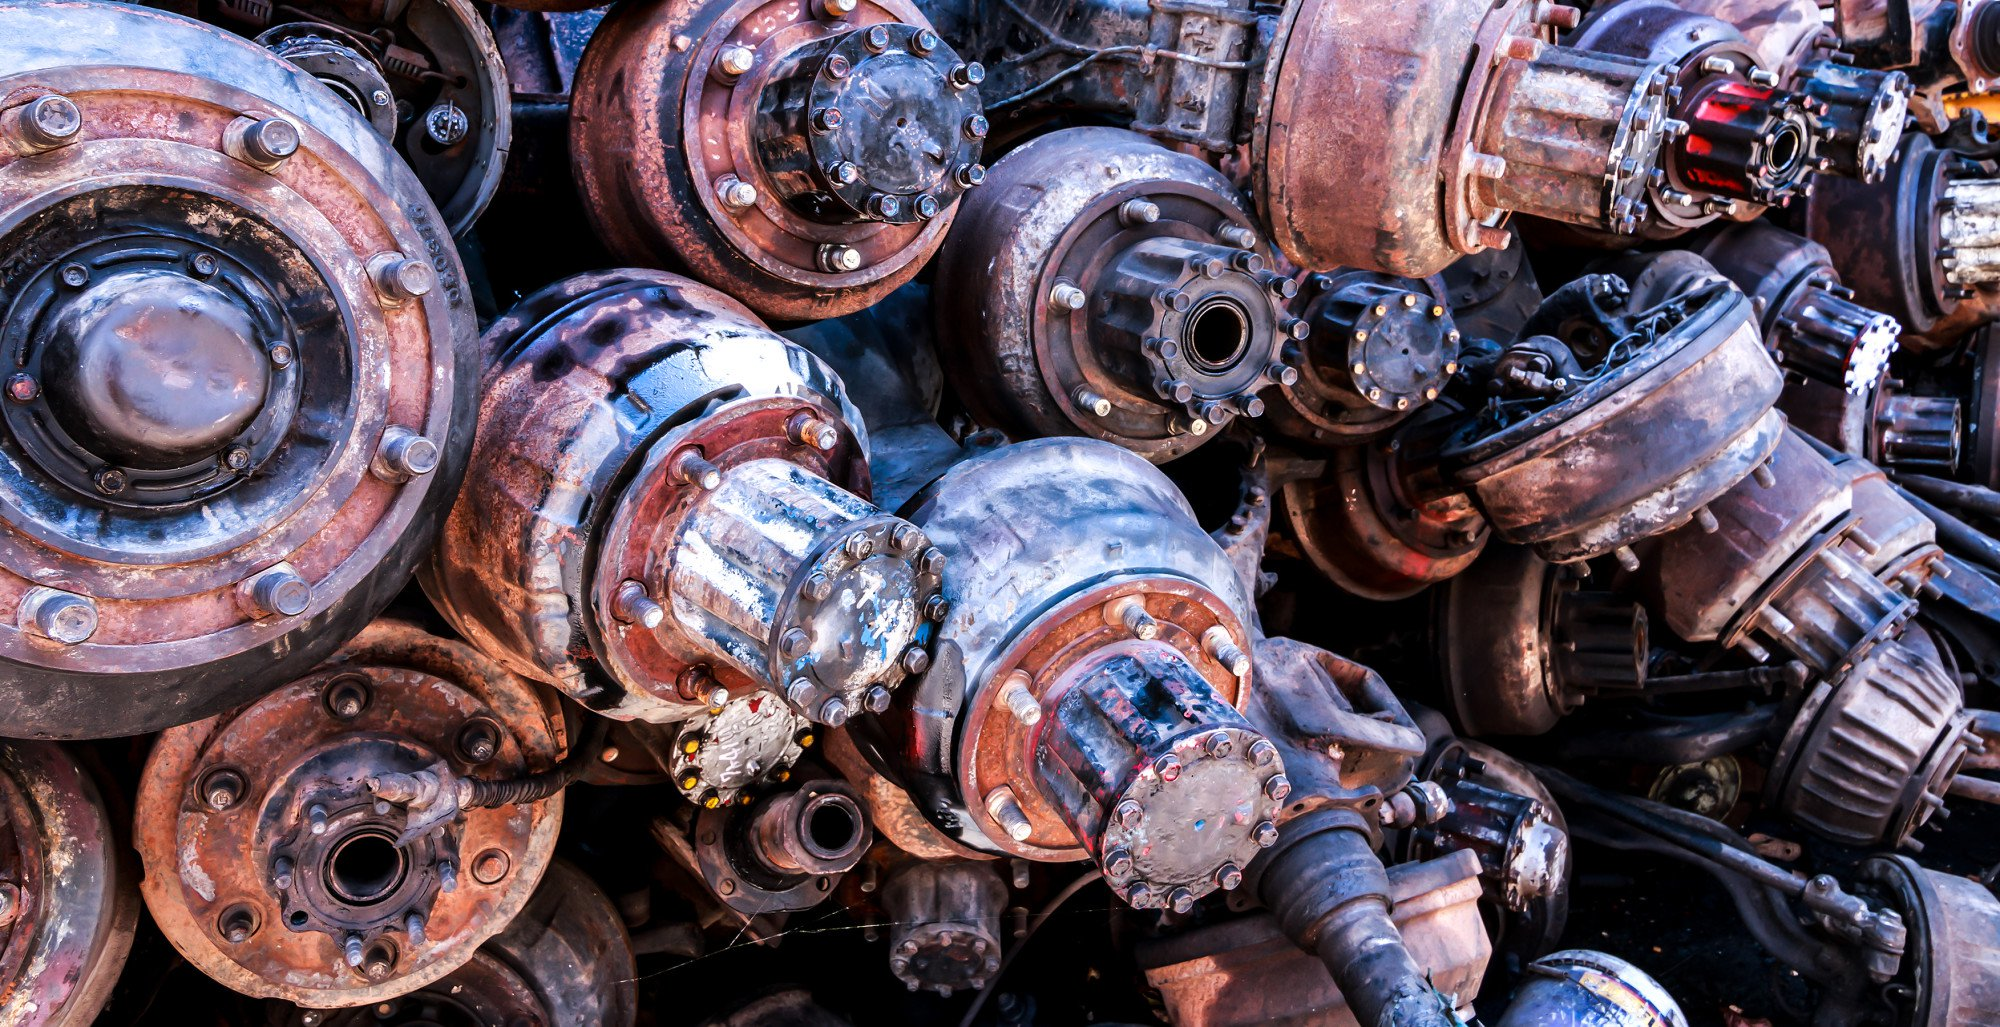 One Man's Trash: Most Valuable Car Parts